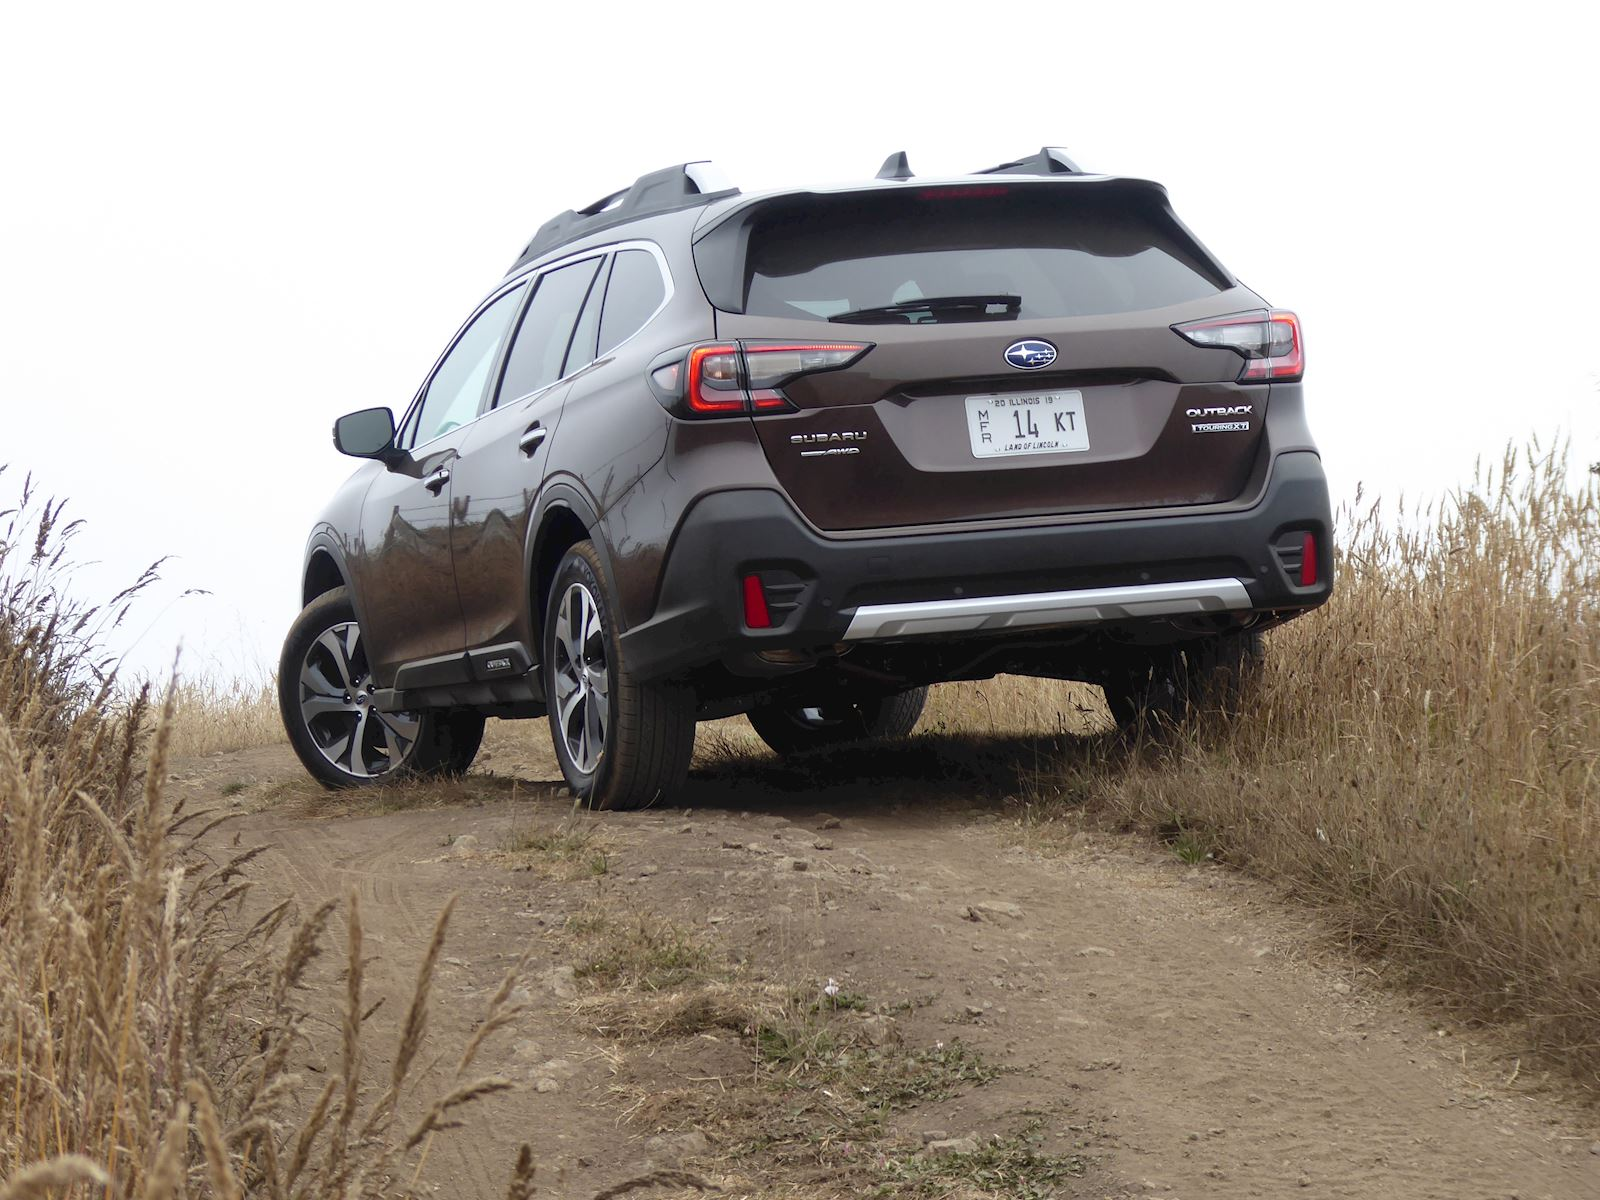 2020 Subaru Outback rear view photo